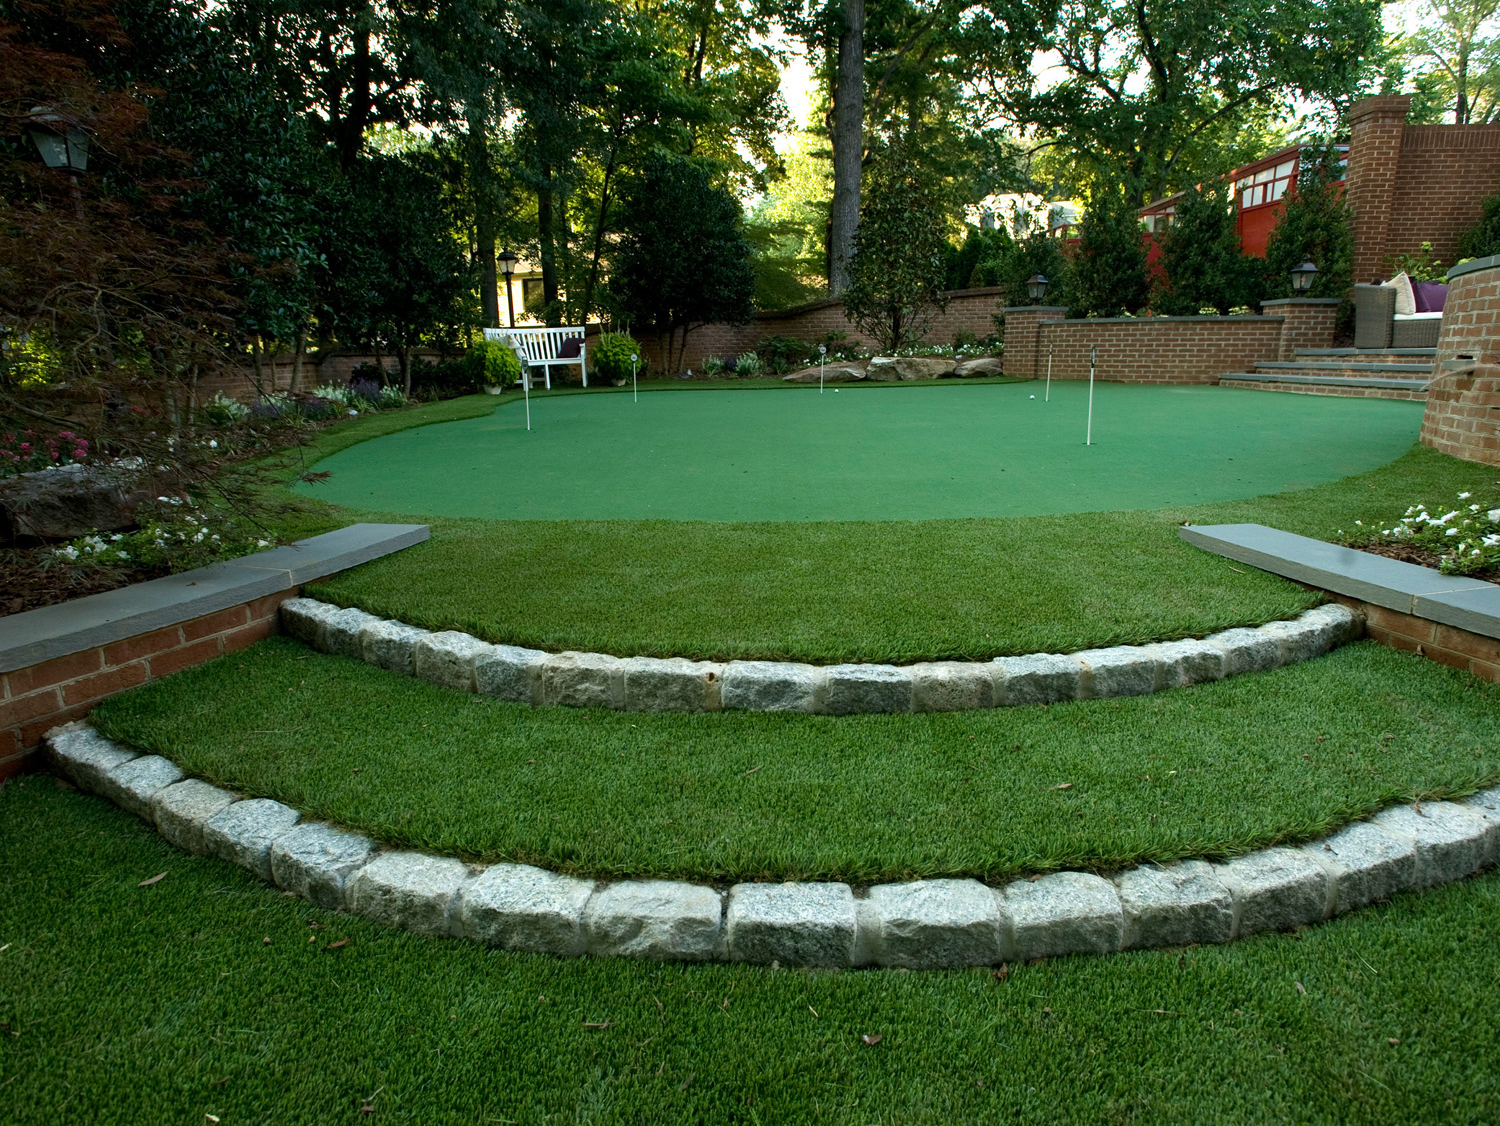 McLean Residence Putting Green & Cobble Terracing